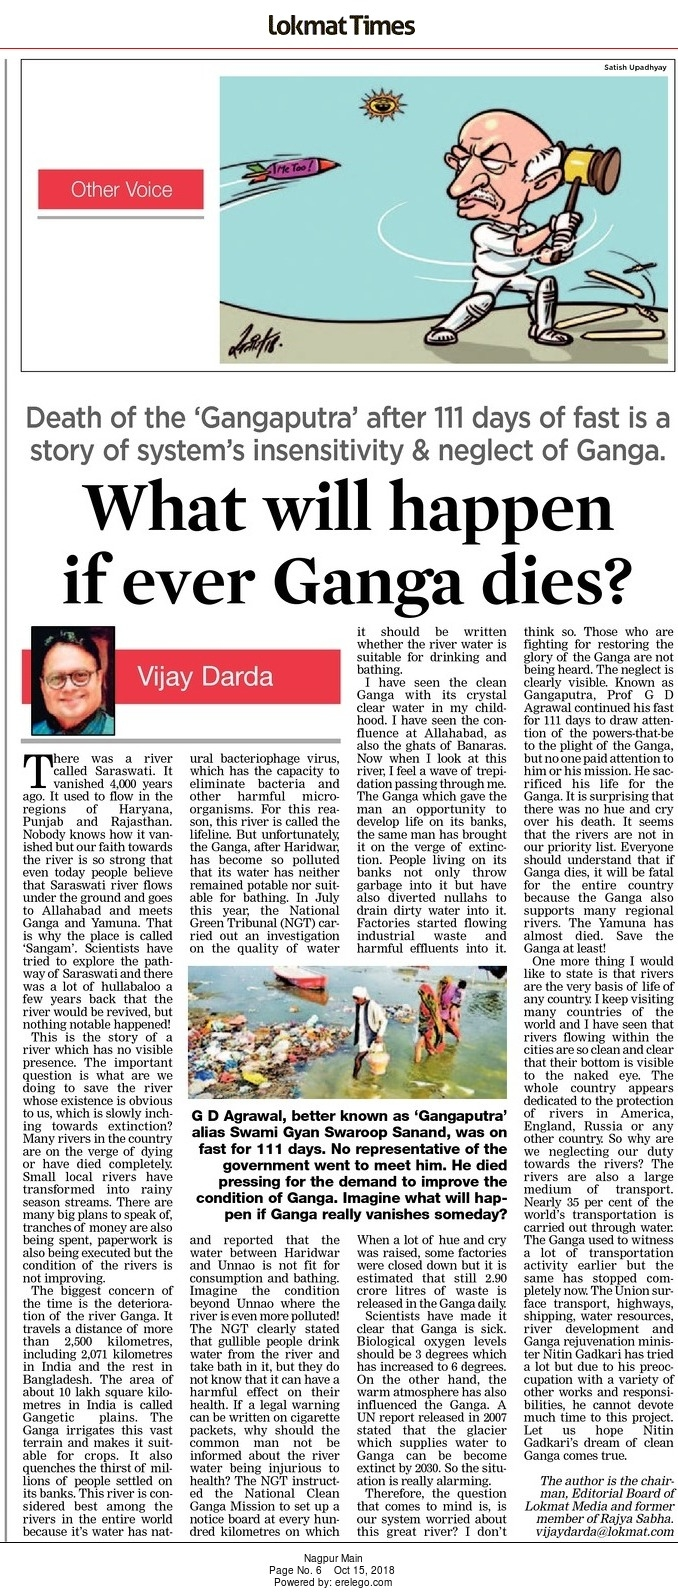 What will happen if ever Ganga dies?